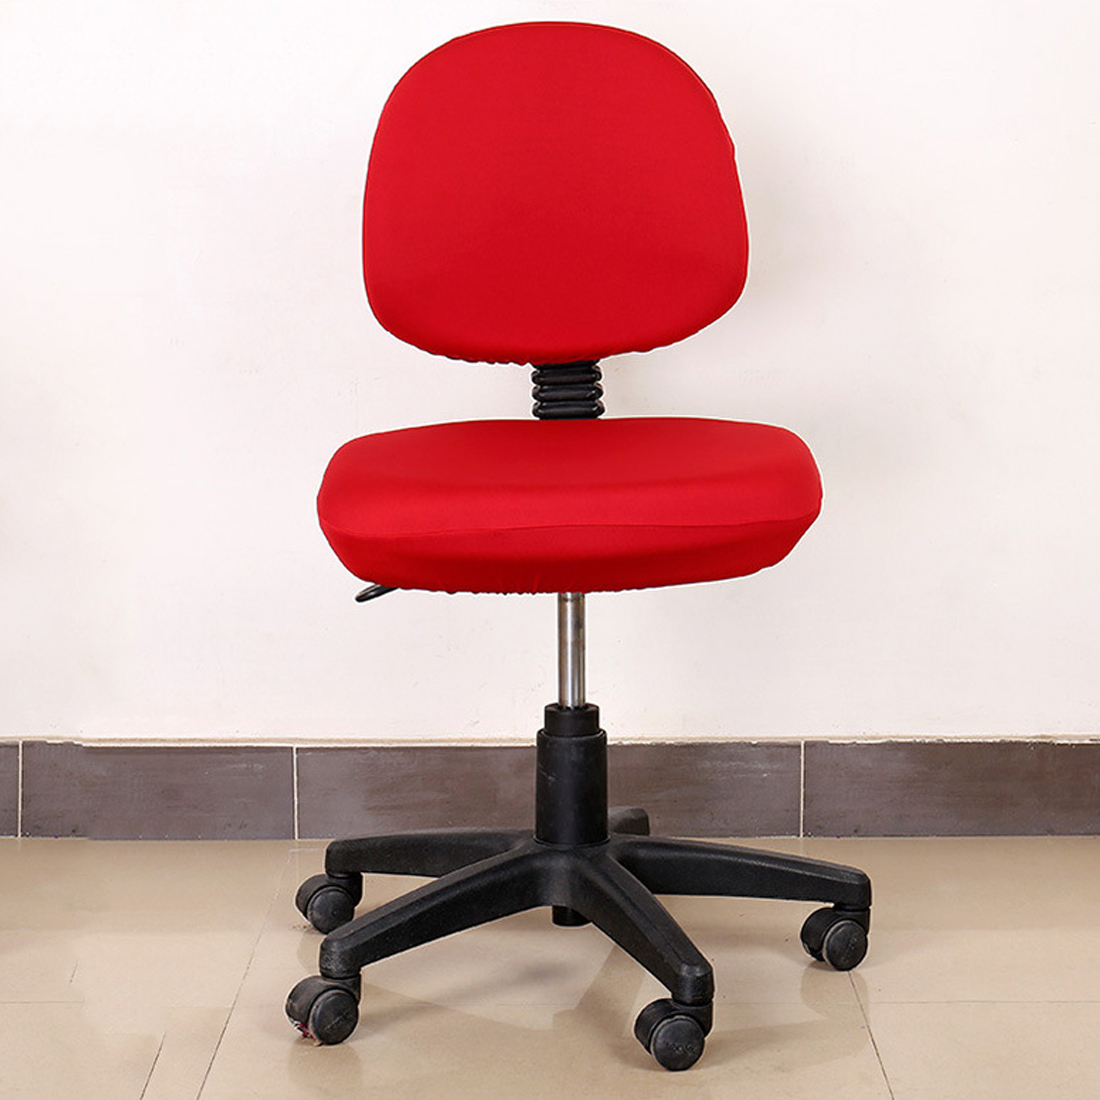 Elastic Chair Covers Made with Polyester Material For Office and Computer Chair in Universal Size 12